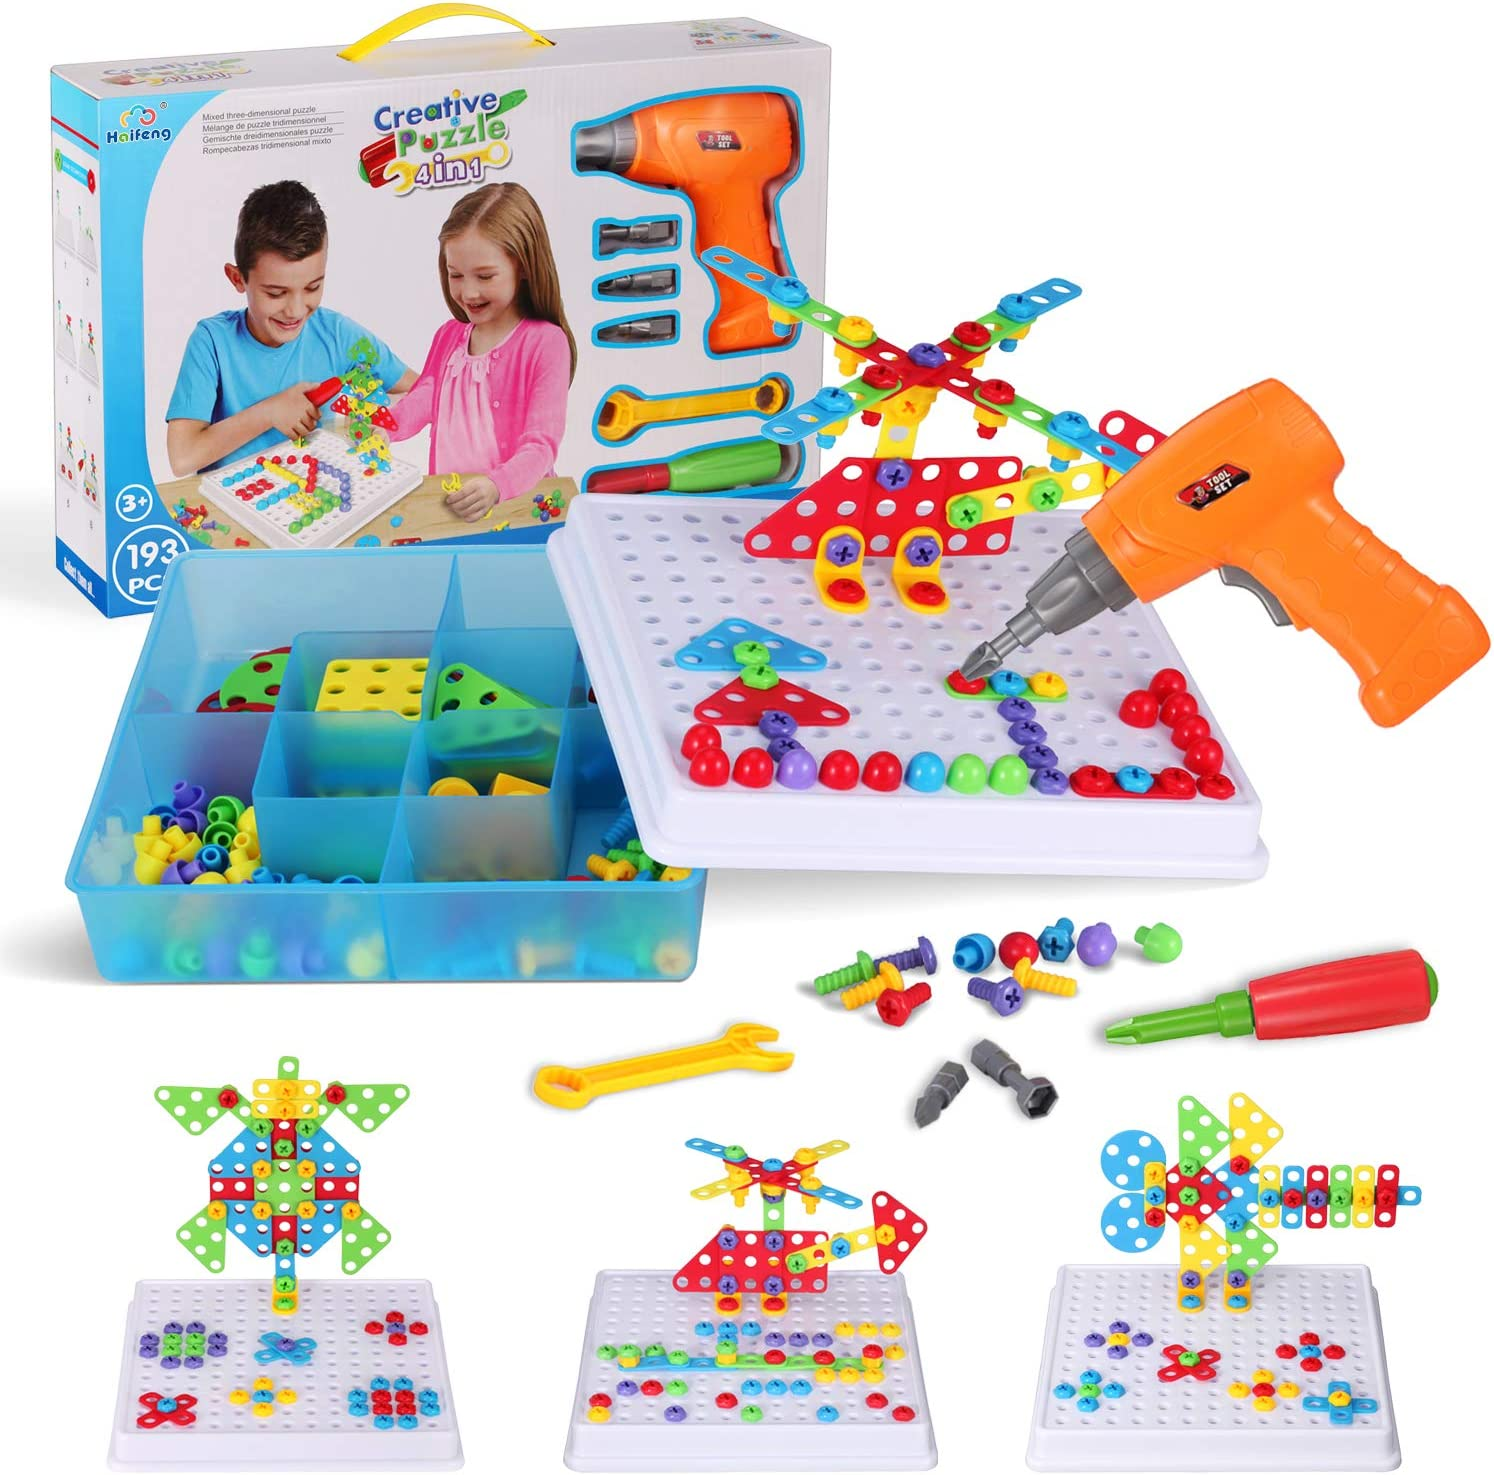 Haifeng Design Gift Drill Educational Toys Games Set 3D Construction Building Block and STEM Engineering Toys Kit Engineering Toolkit Best Gift for Boys and Girls!